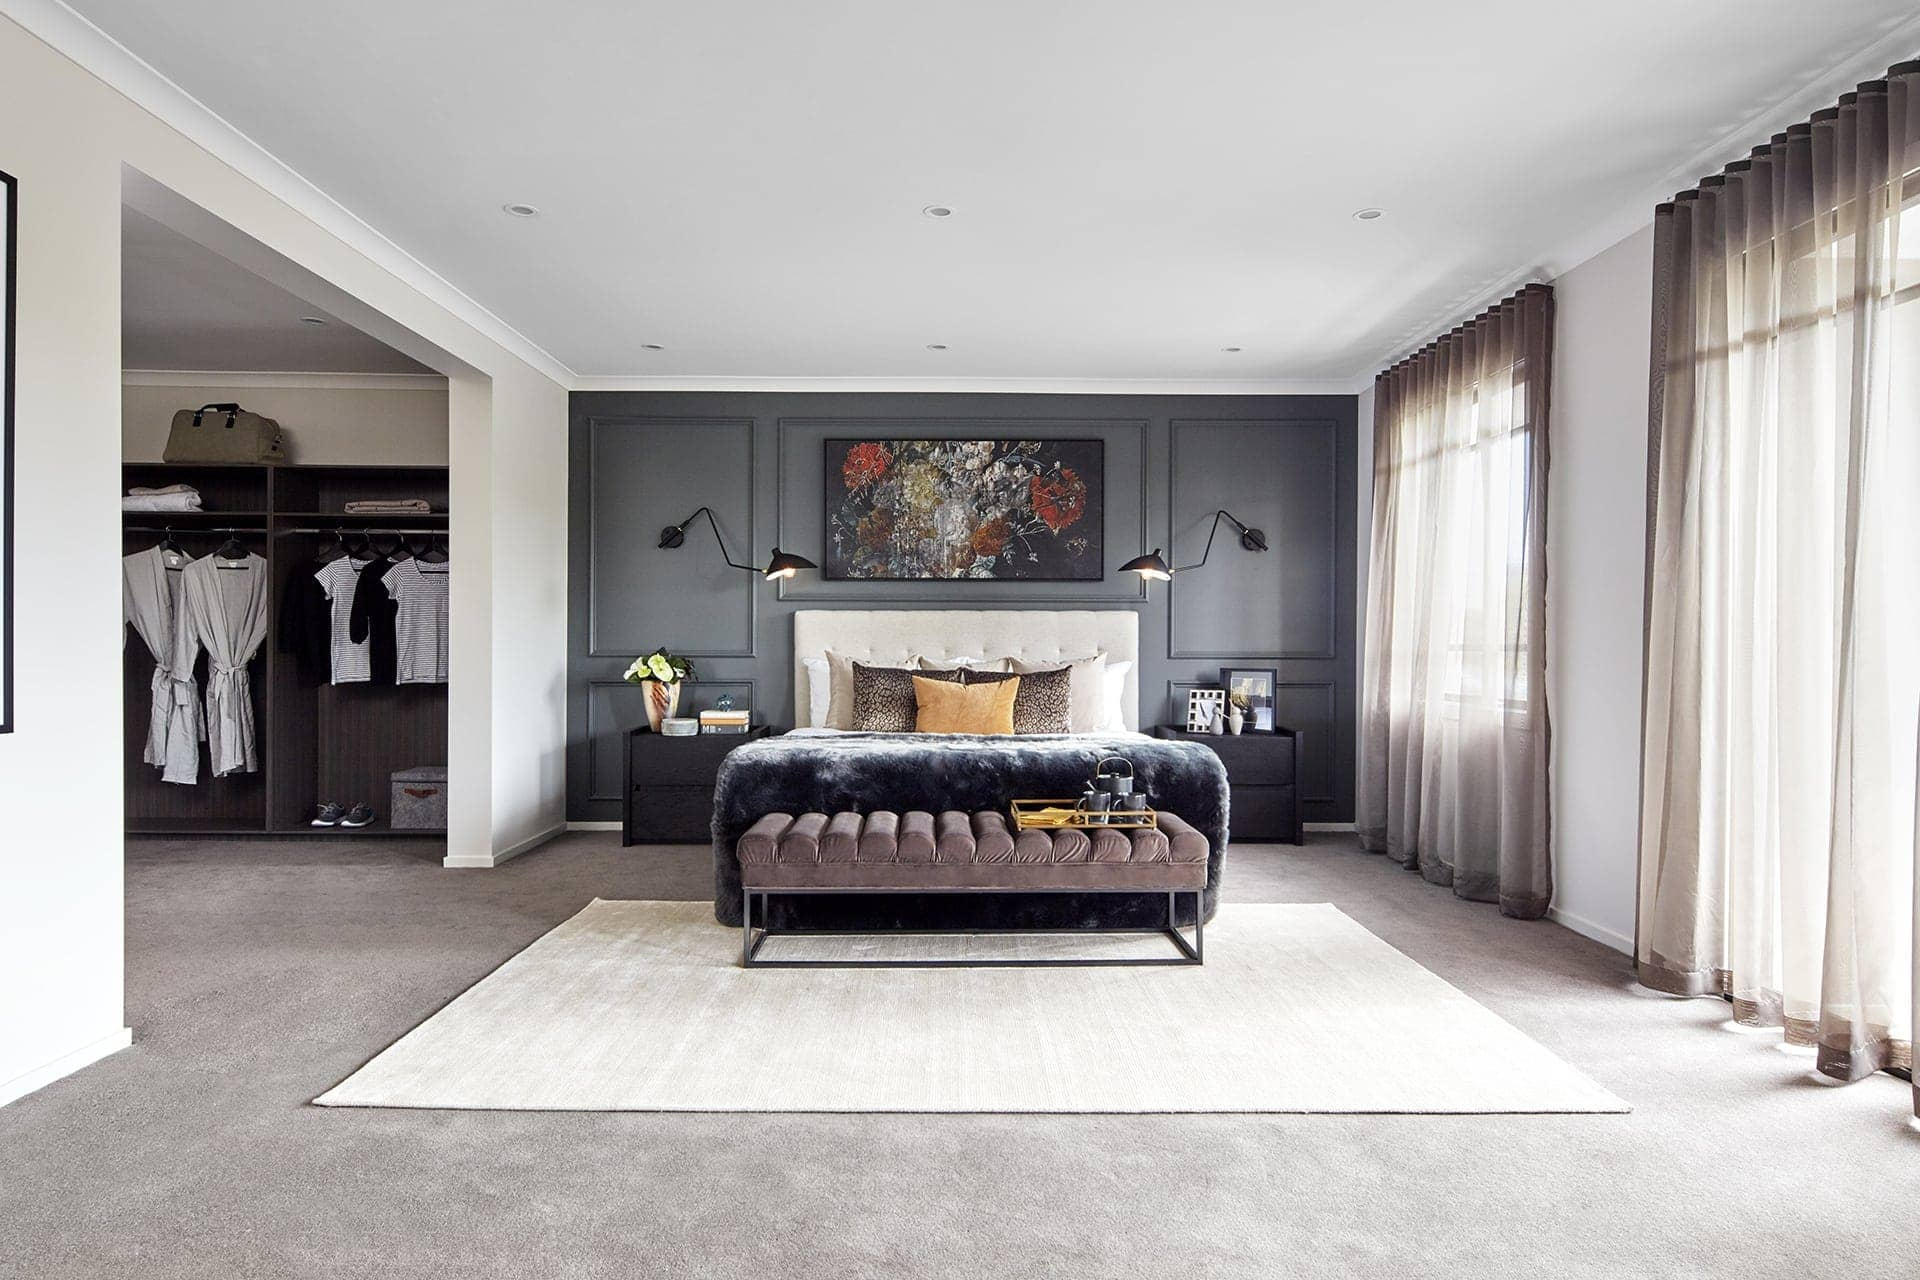 dark bedroom wall ideas from metricon hampshire display home in essendon